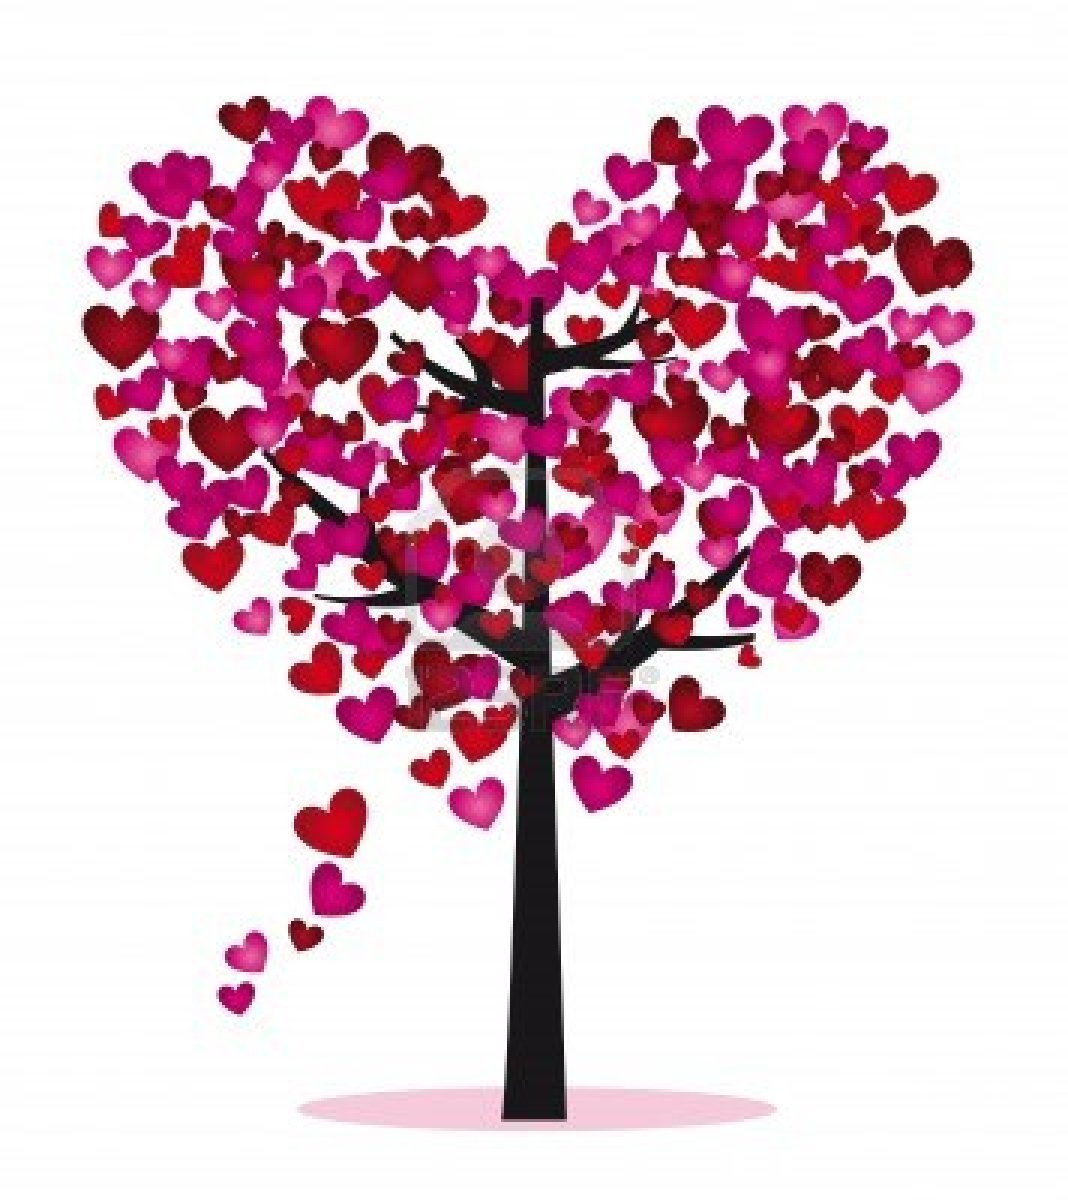 Heart Tree Clipart.